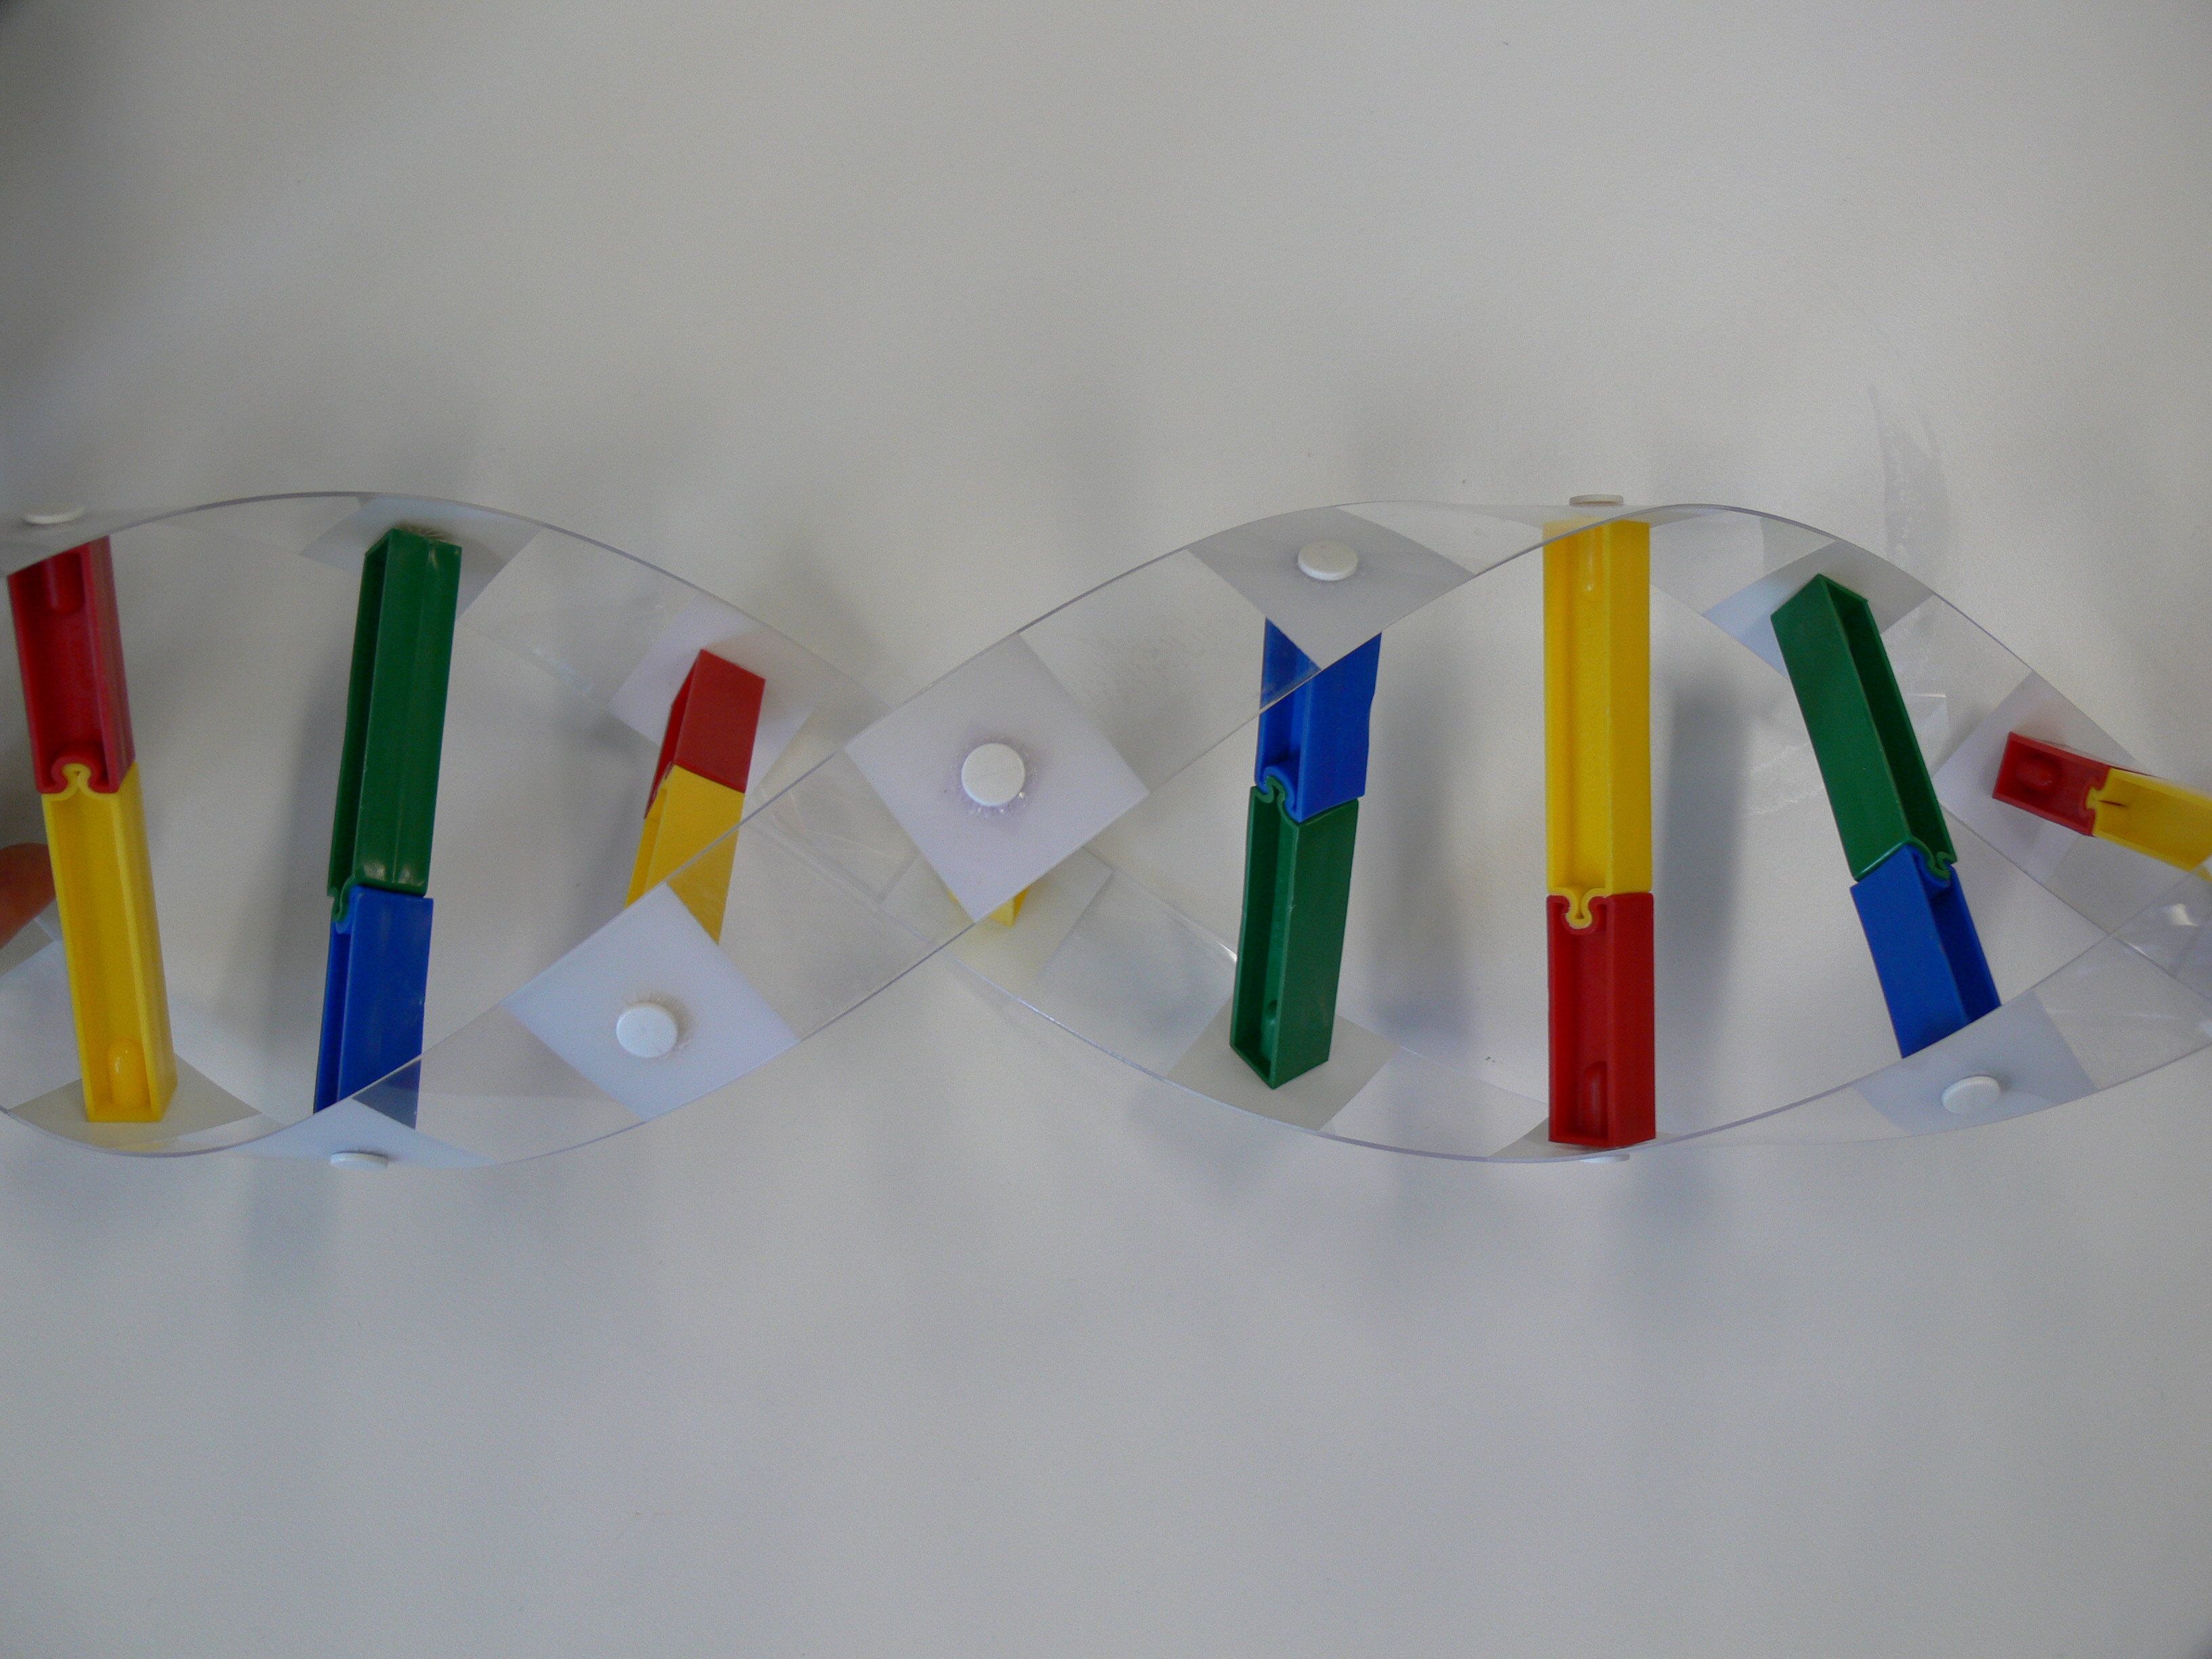 plastic model of double helix DNA strand